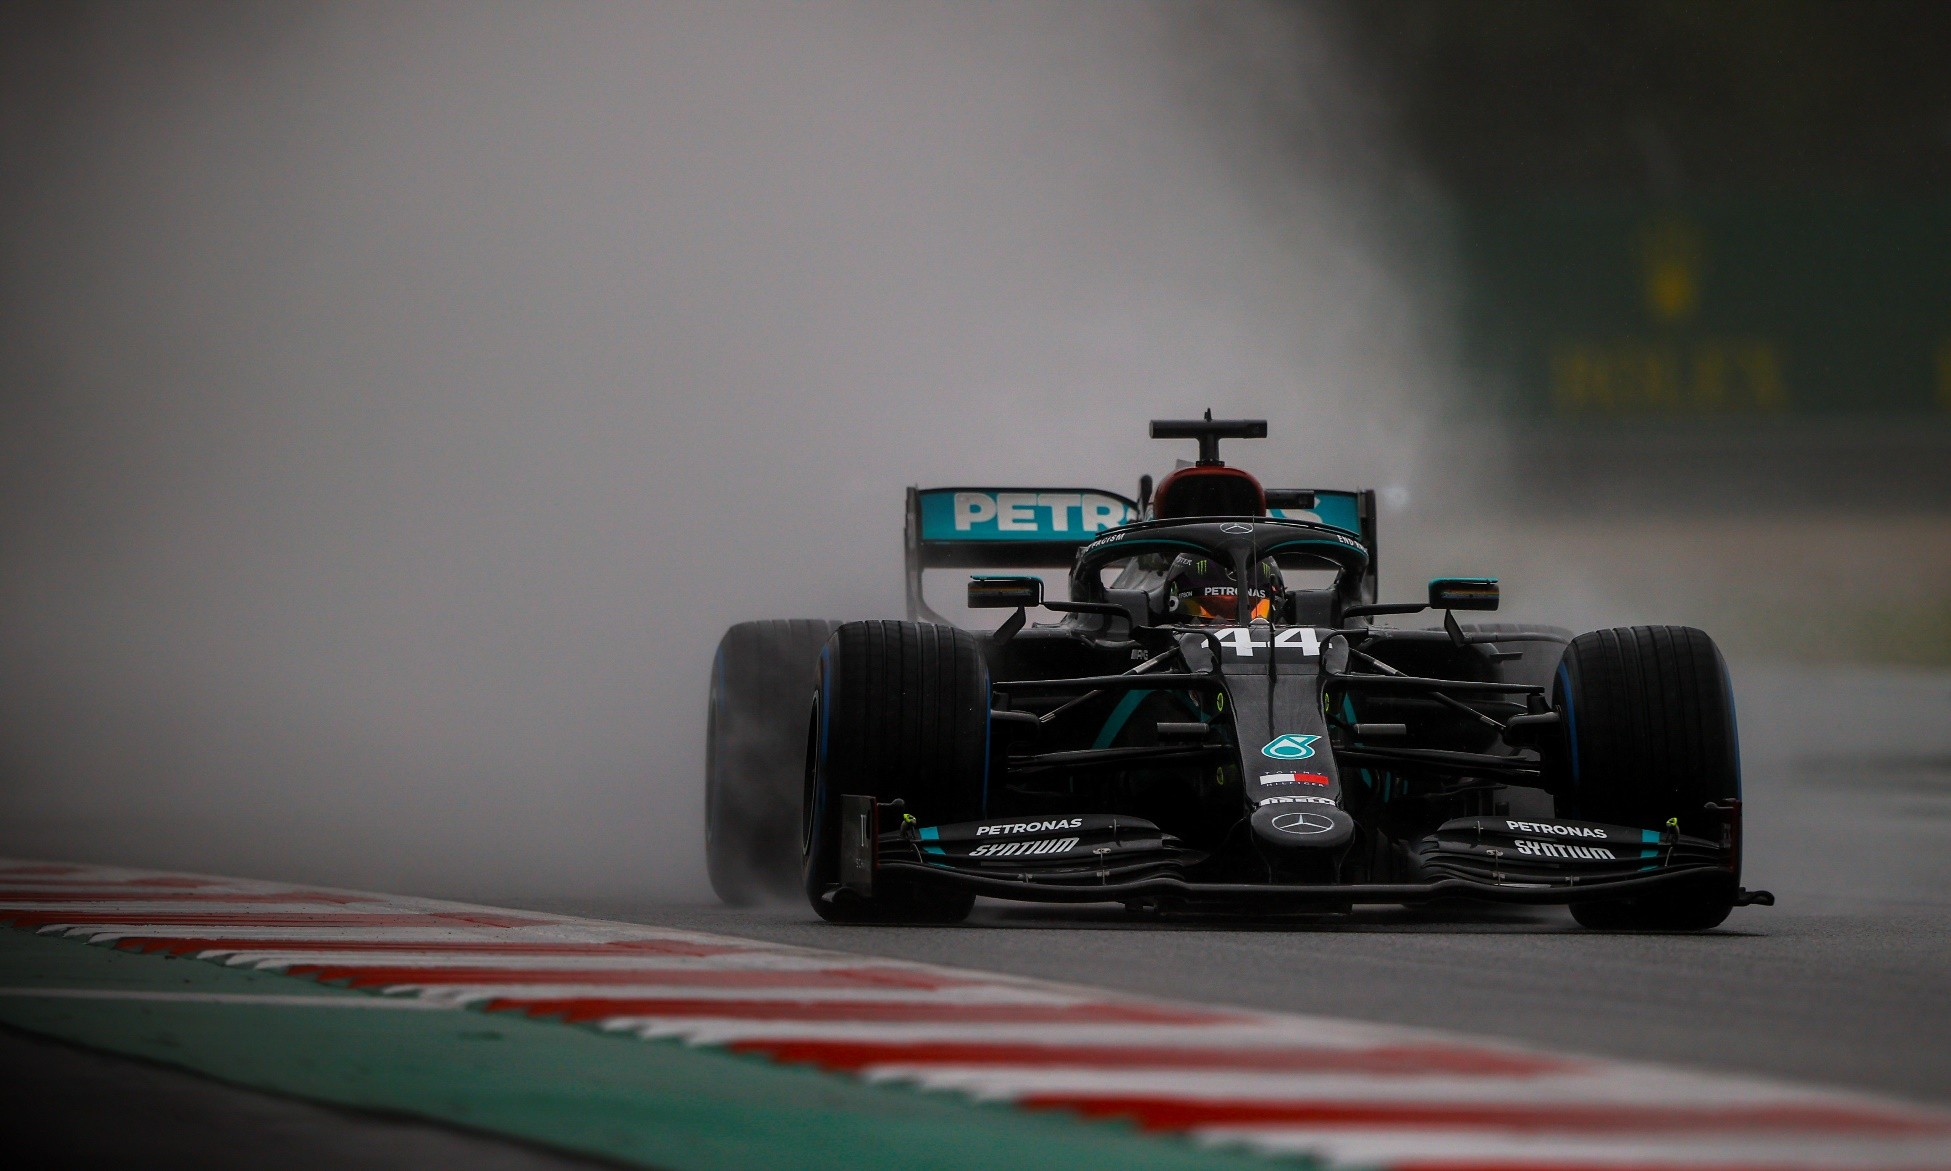 F1 Review Styria 2020 Lewis Hamilton in qualifying